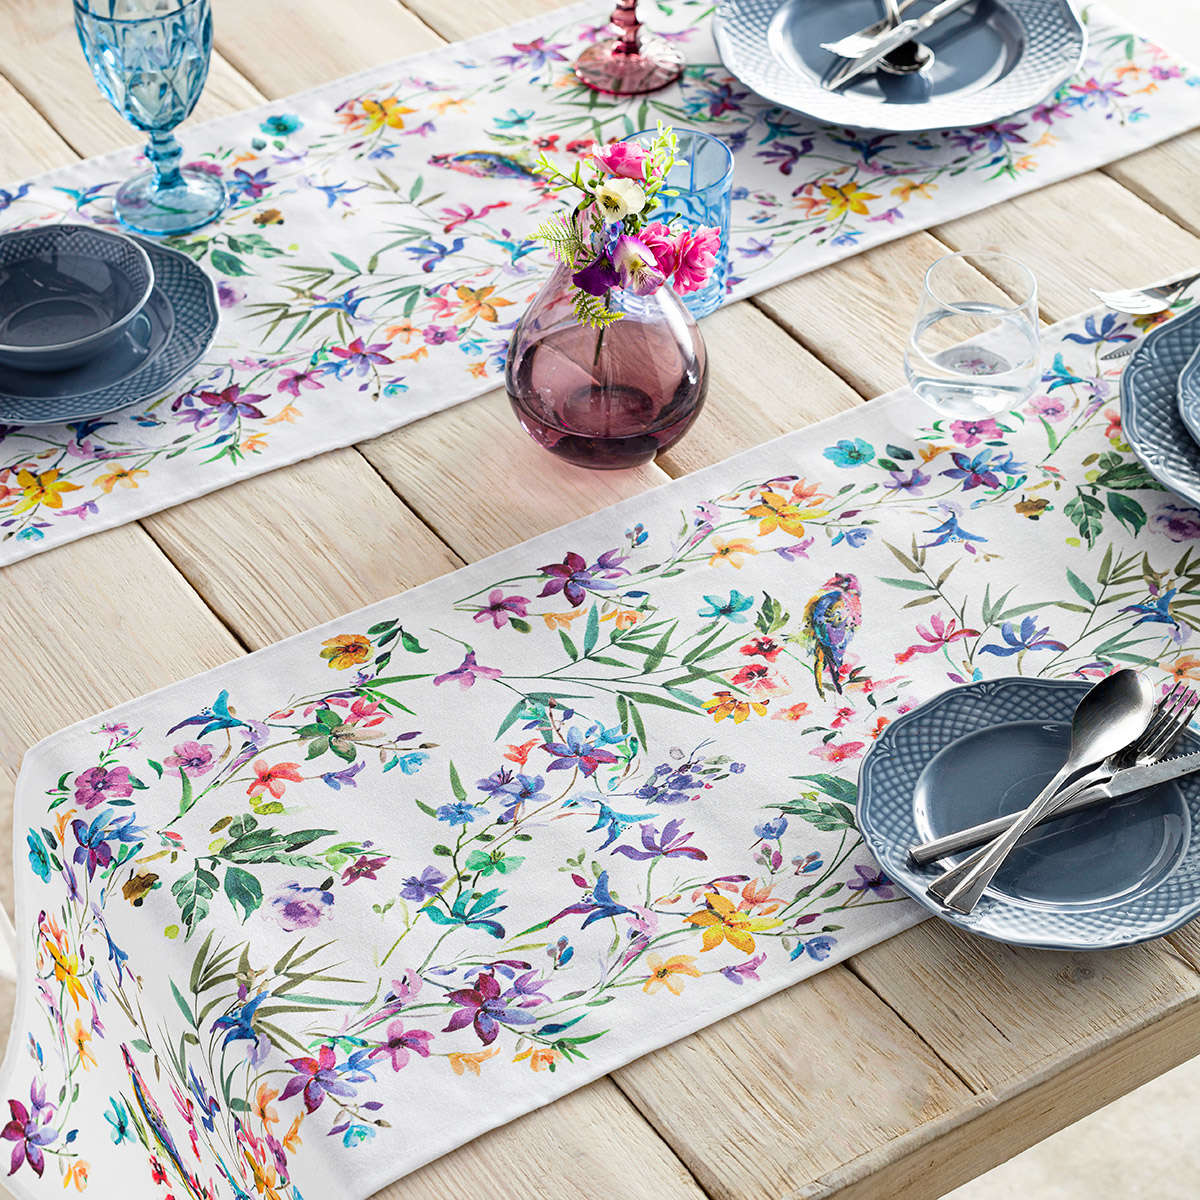 Runner Florita 814A Multi Gofis Home 40Χ150